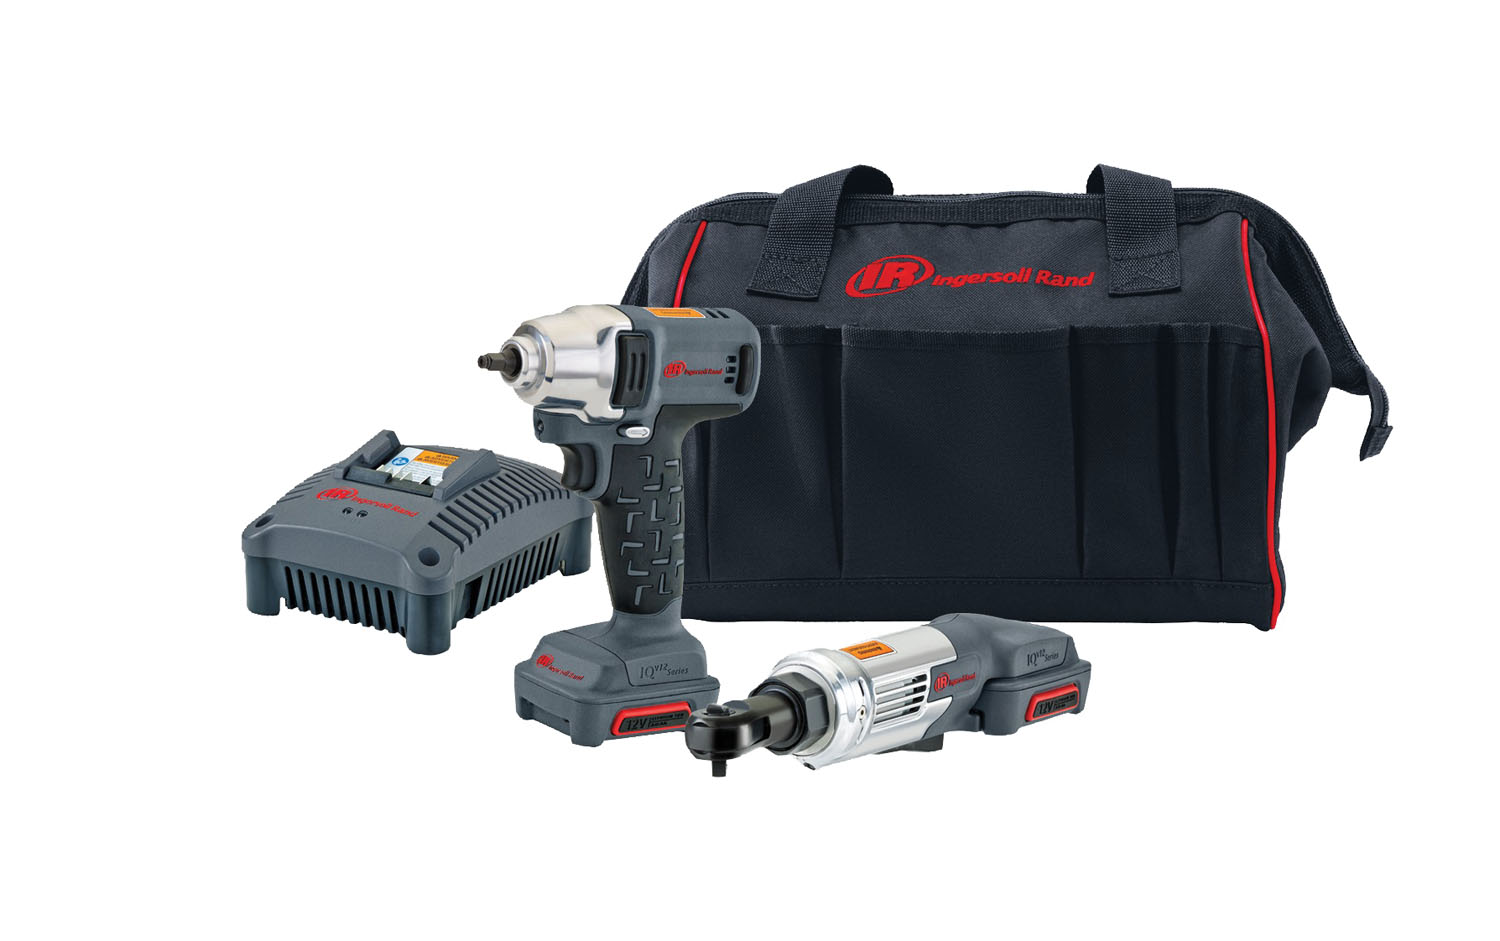 12v Cordless Impact Wrench And Ratchet Combo Kit Ingersoll Rand Irciqv12 202